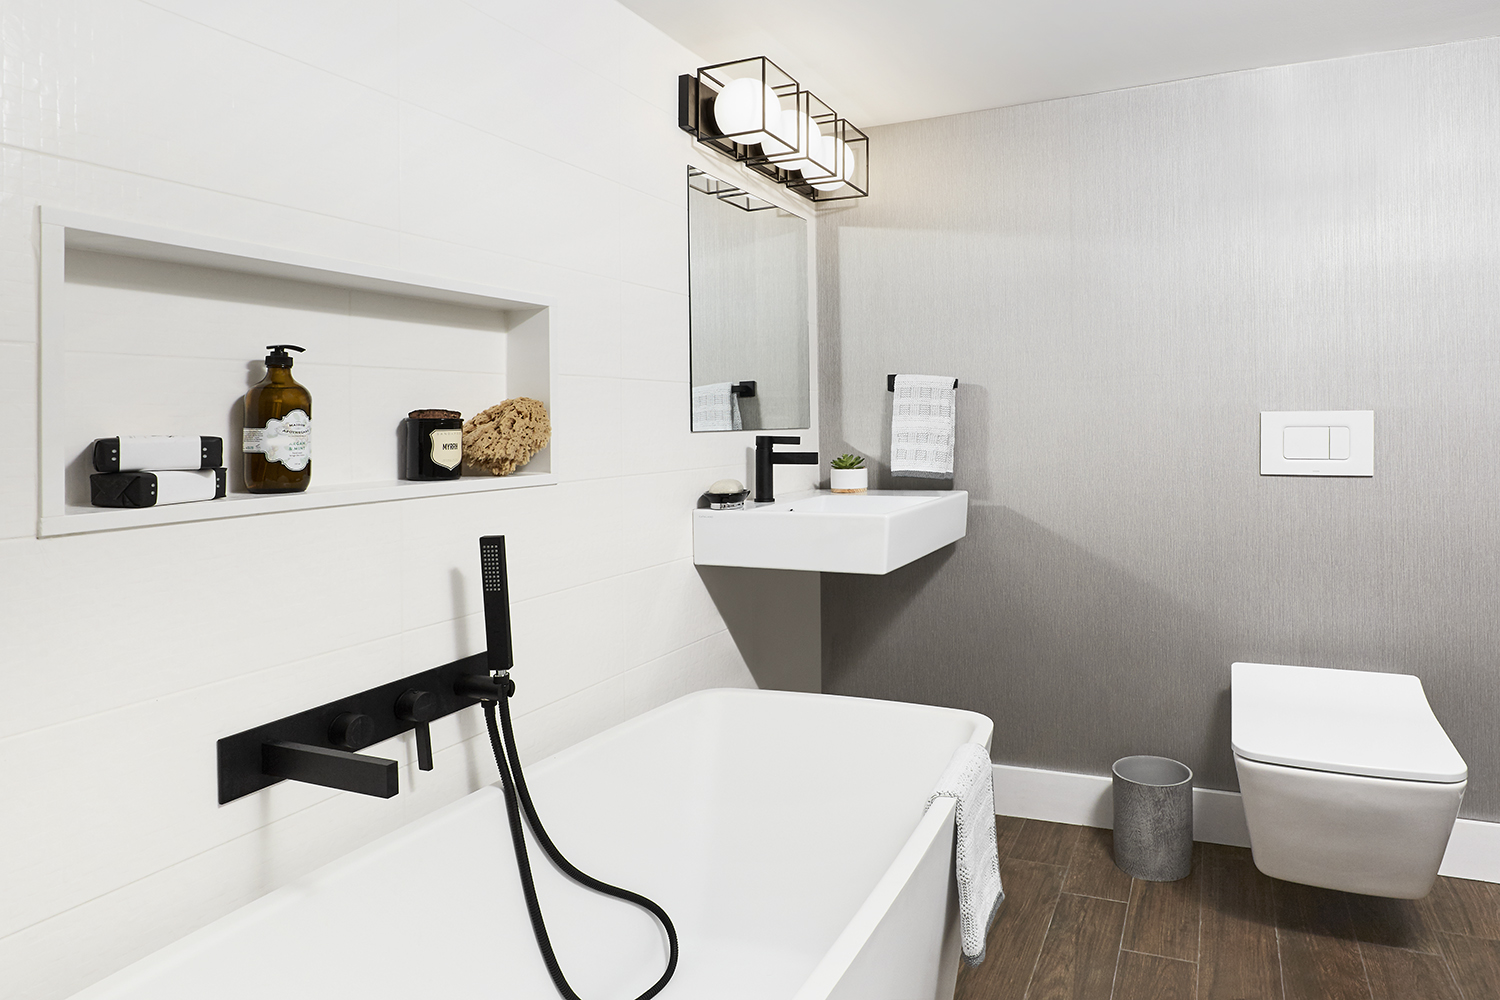 Imperial Ave. – Chaplin Estates Modern Basement Bathroom - Featured Image